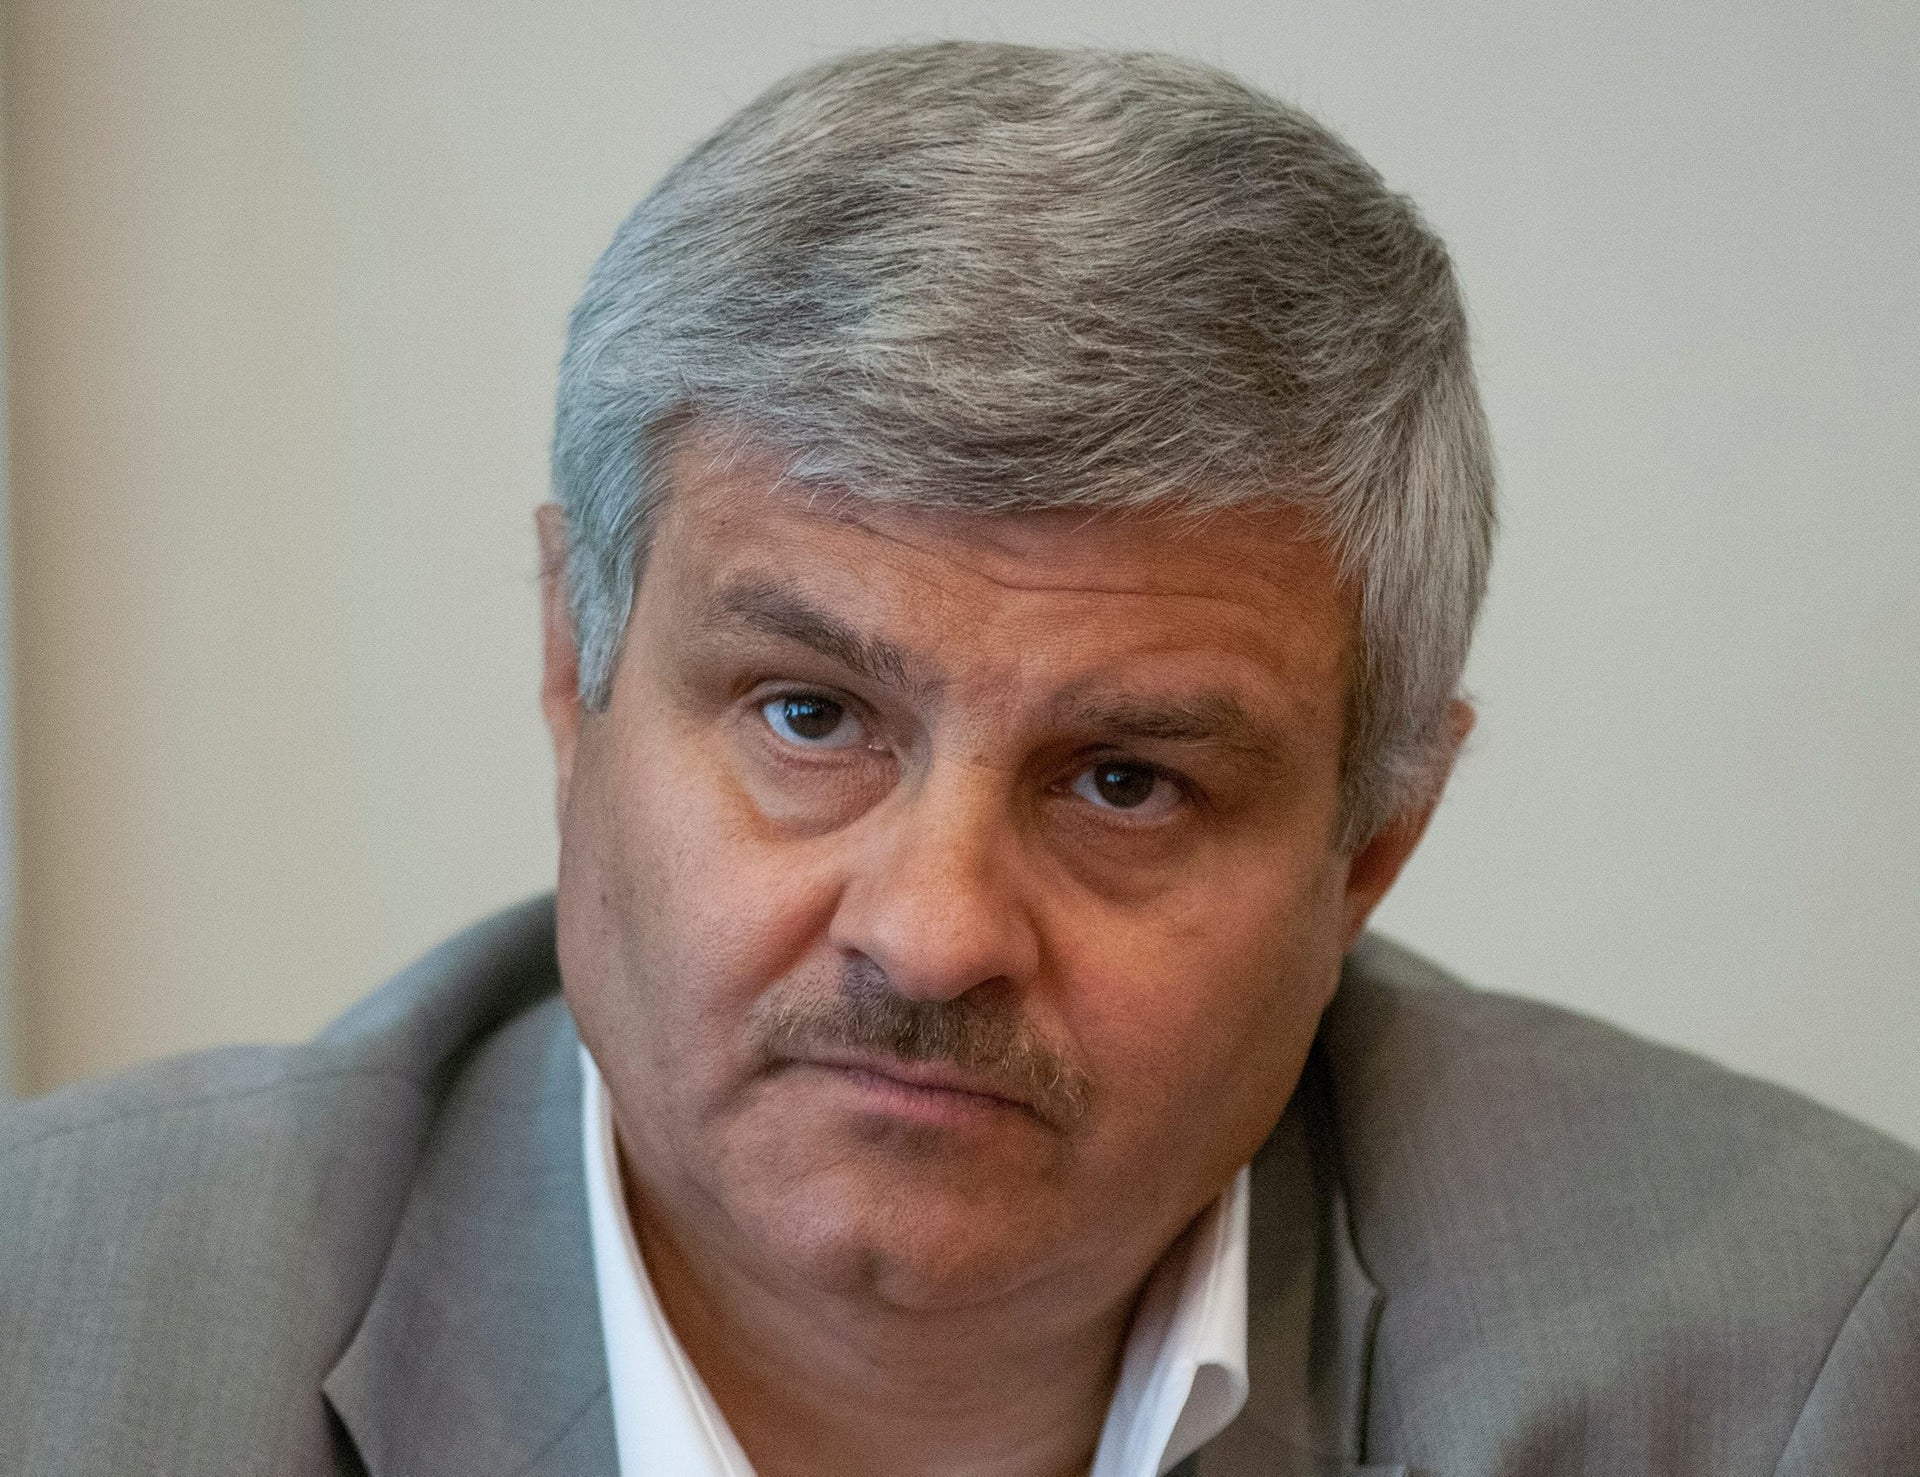 Sergei Tomchani, who helped with founding the air industry firm Khors, attends a news conference in Kiev, Ukraine, July 2, 2010.